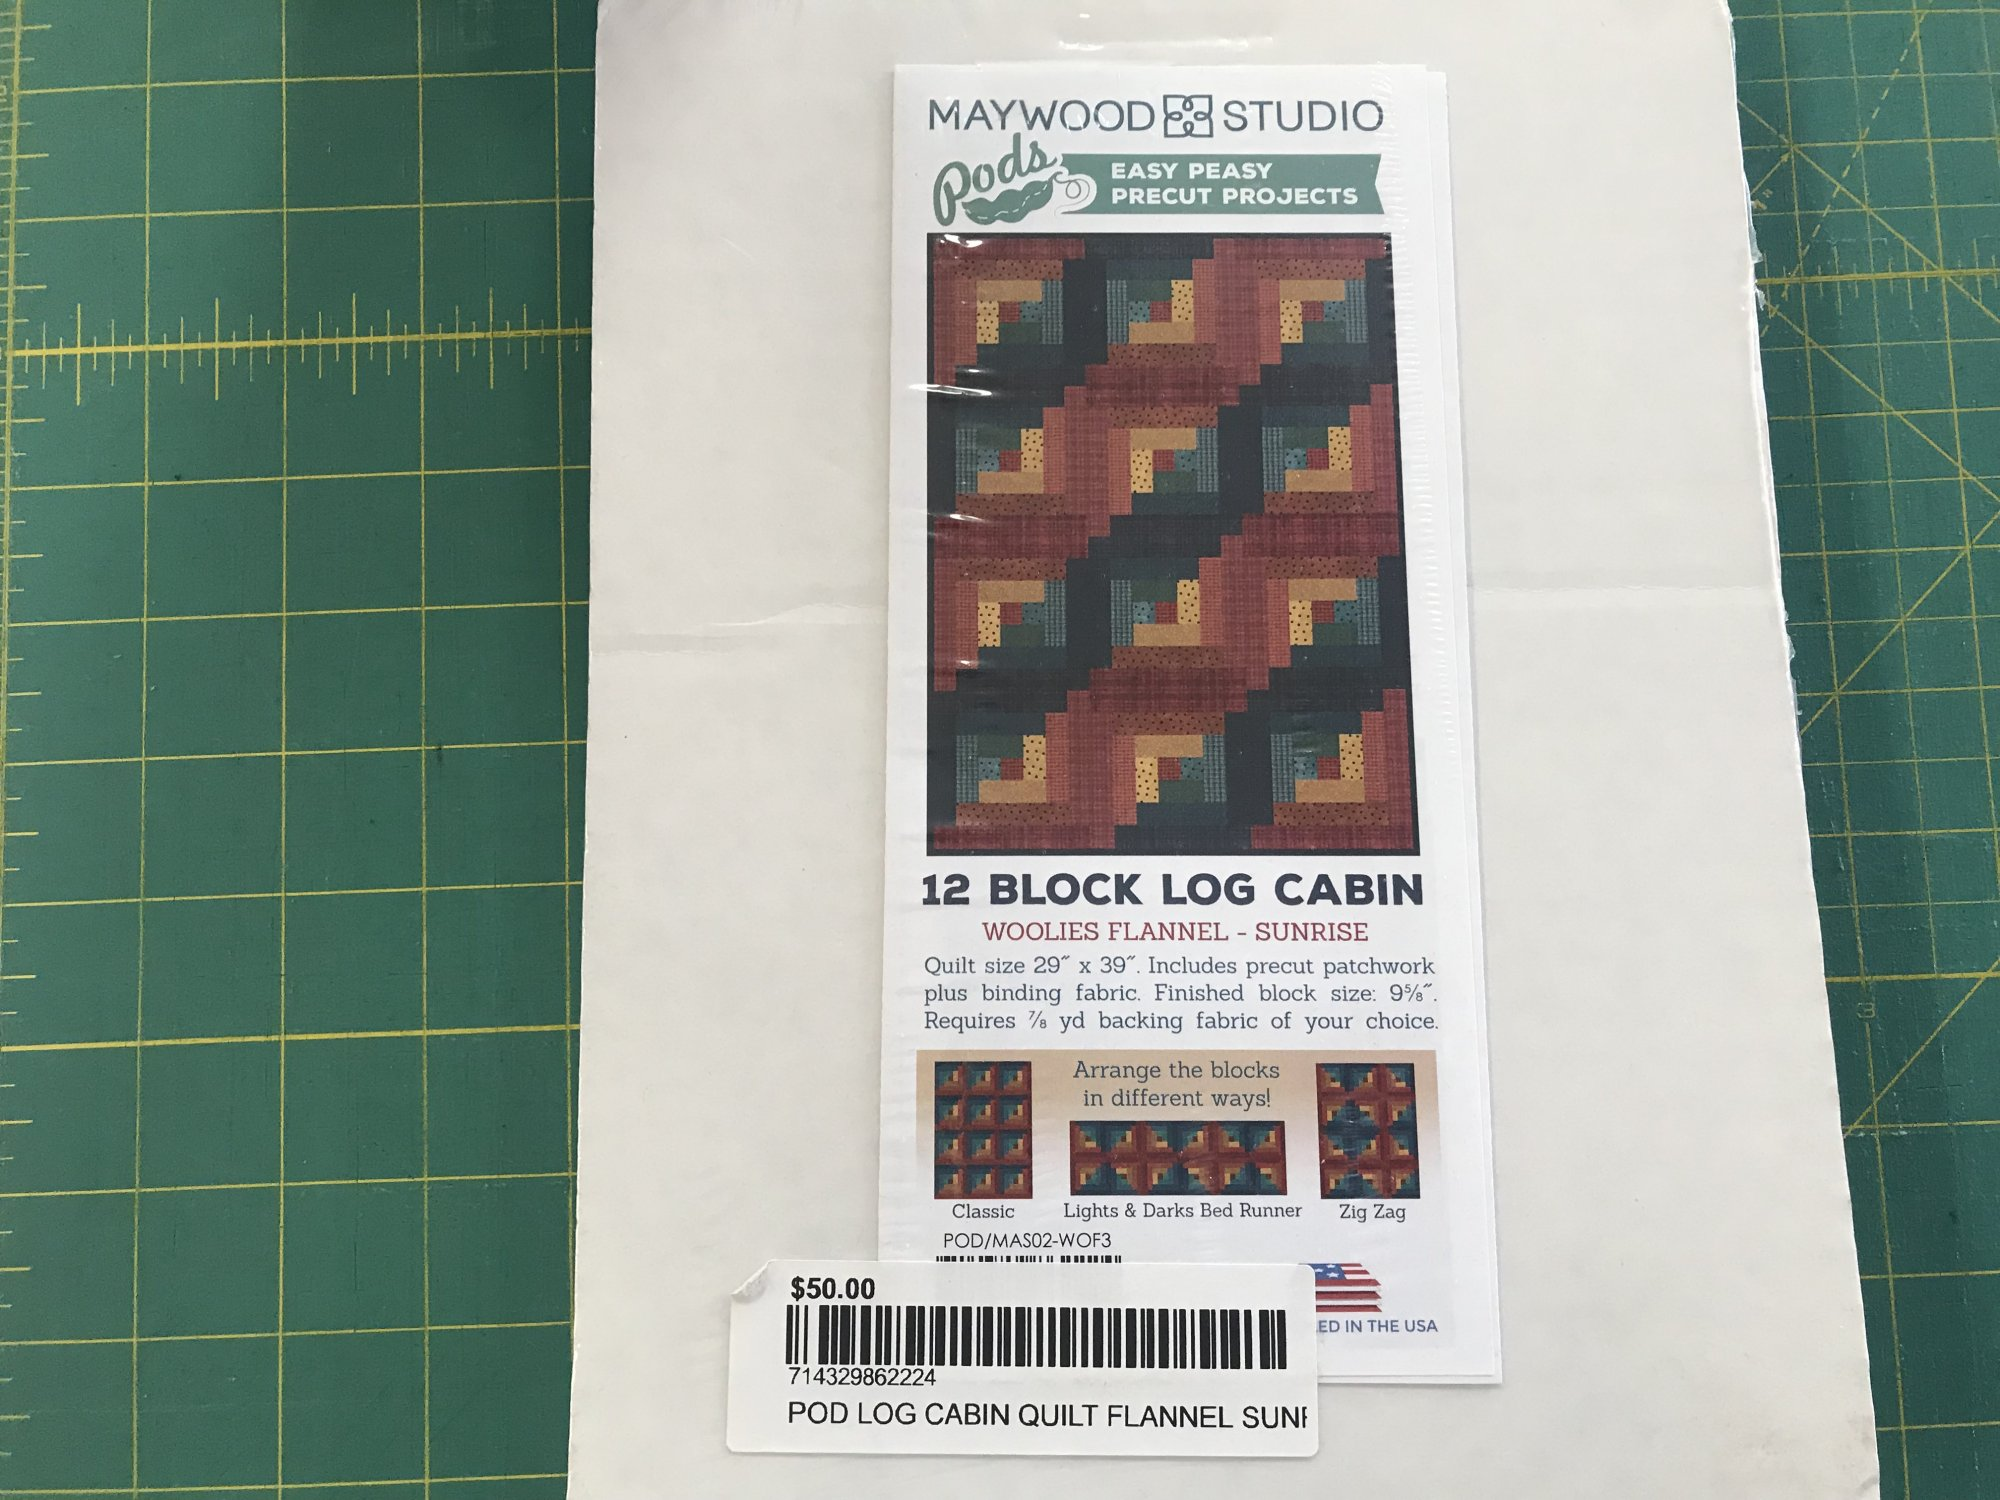 POD Log Cabin Quilt Flannel Sunrise